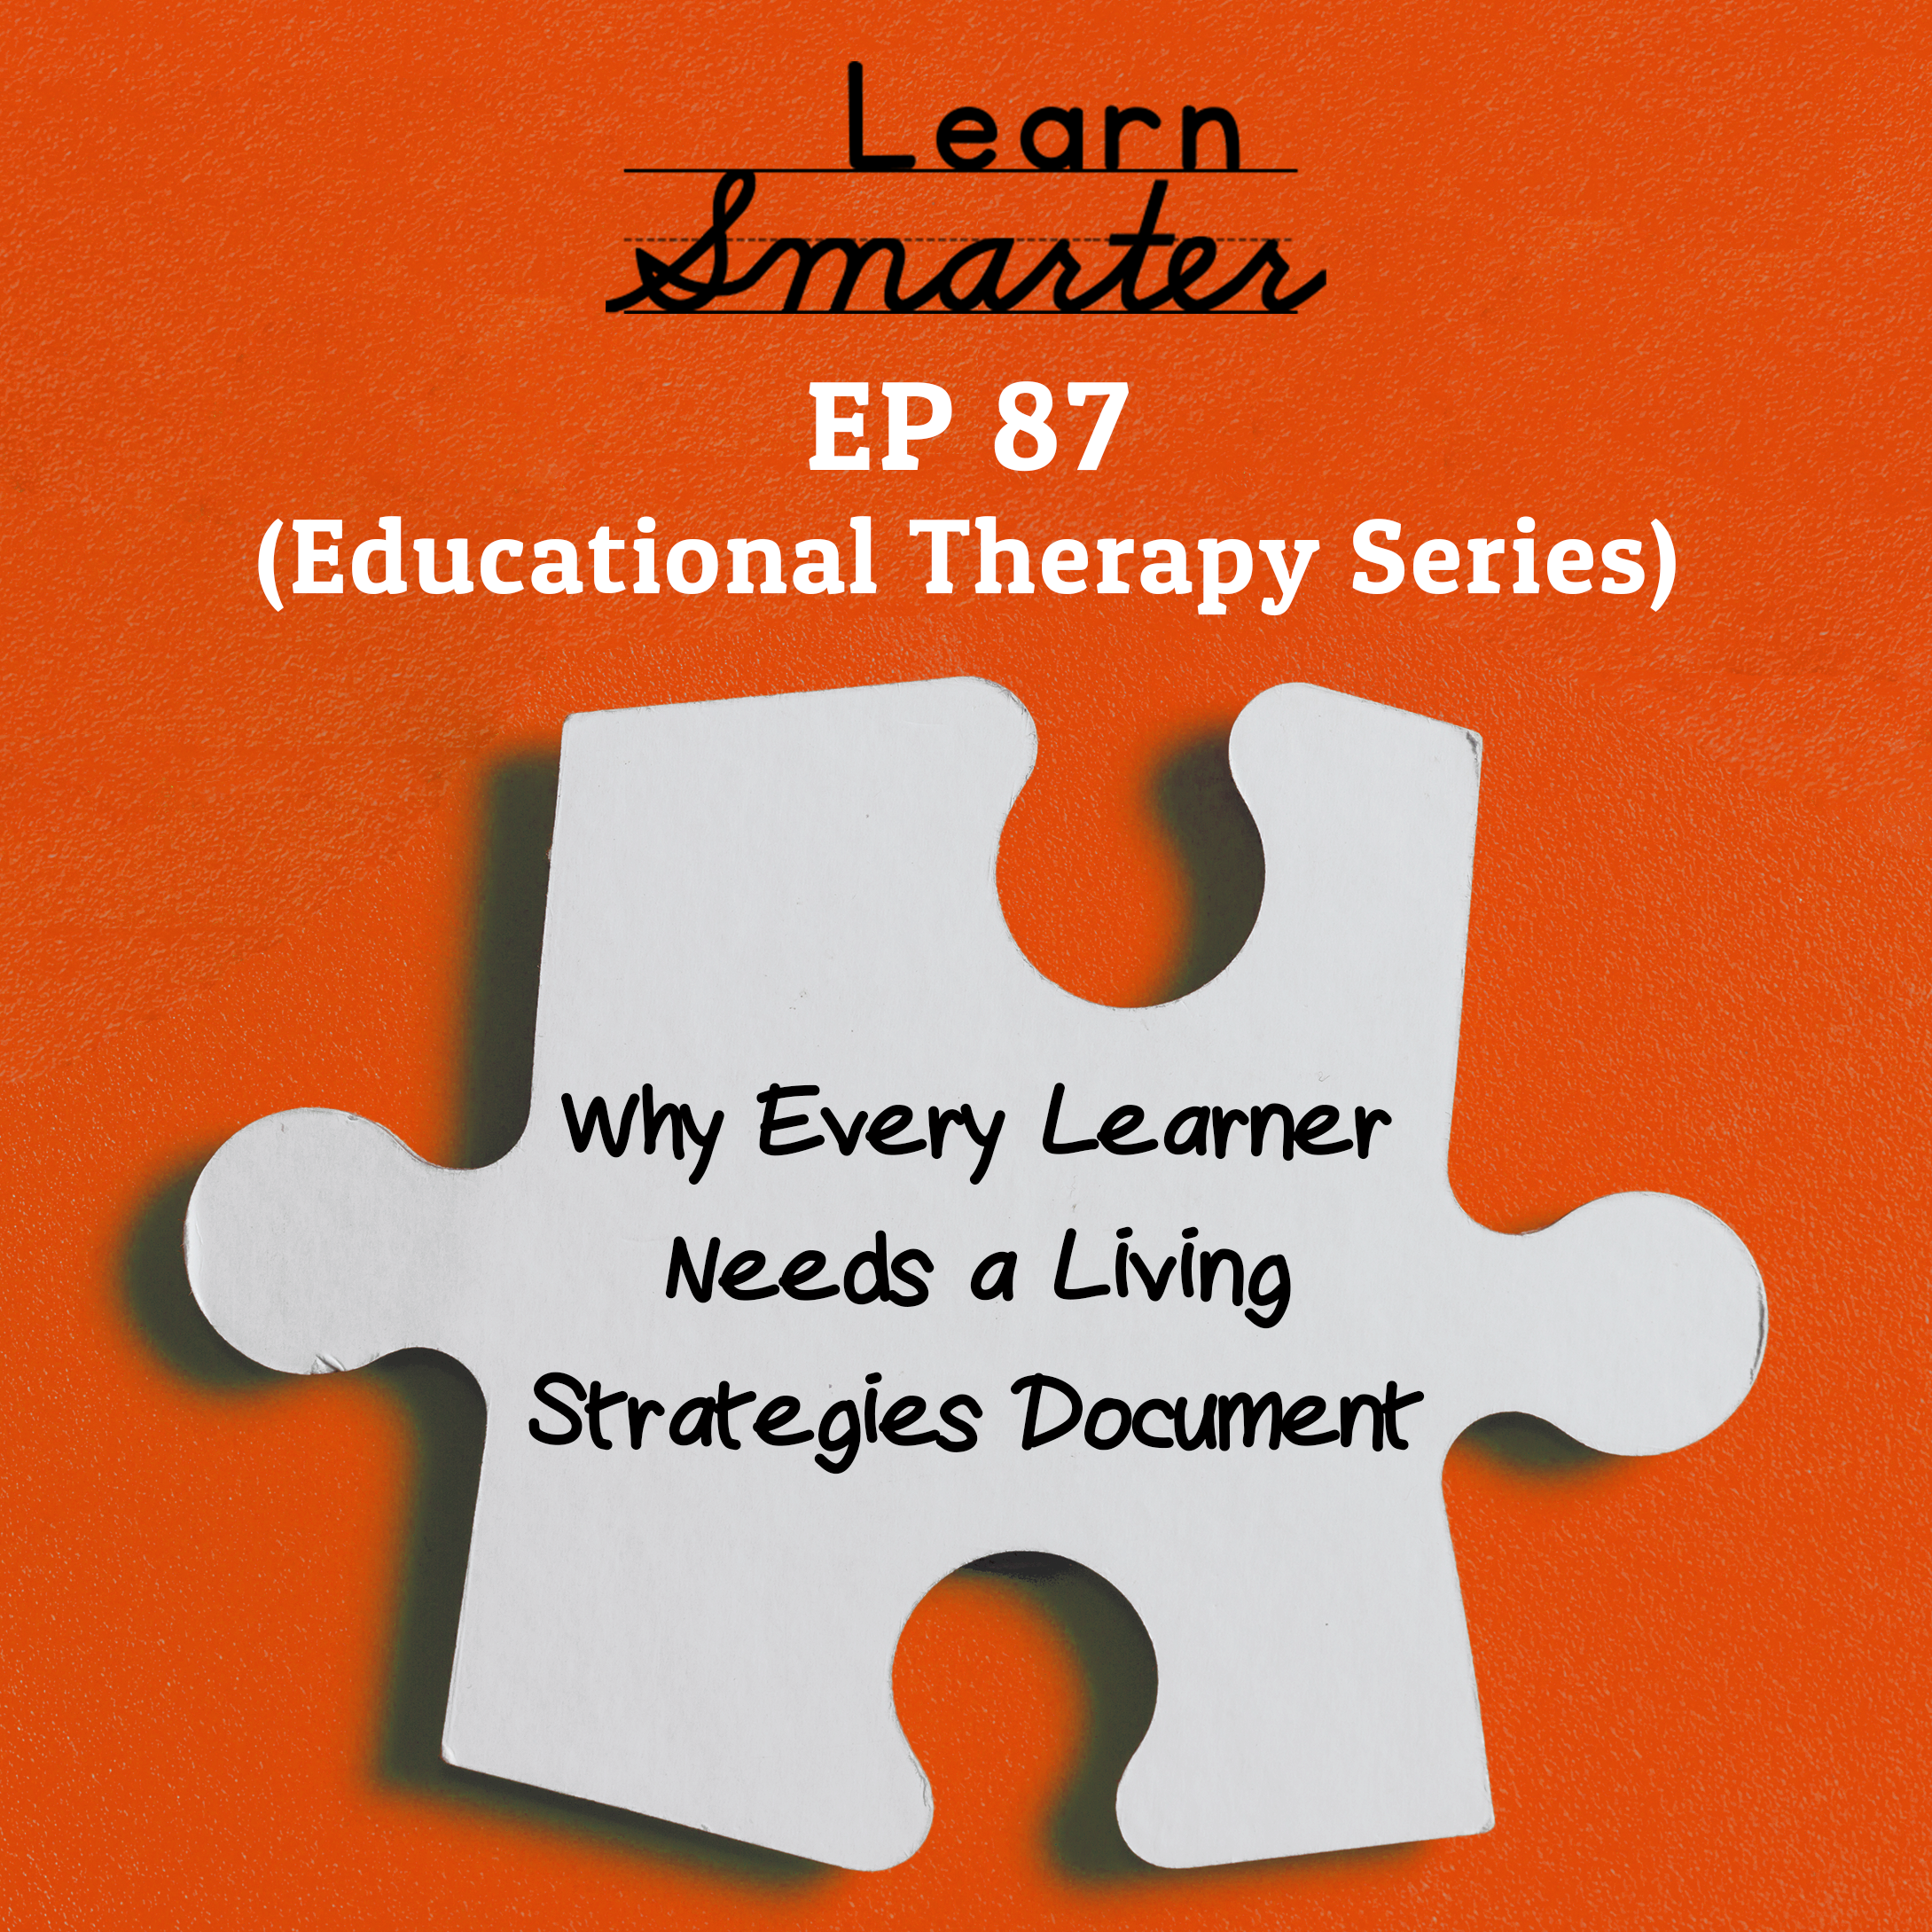 87: Why Every Learner Needs a Living Strategies Document (Educational Therapy Series)